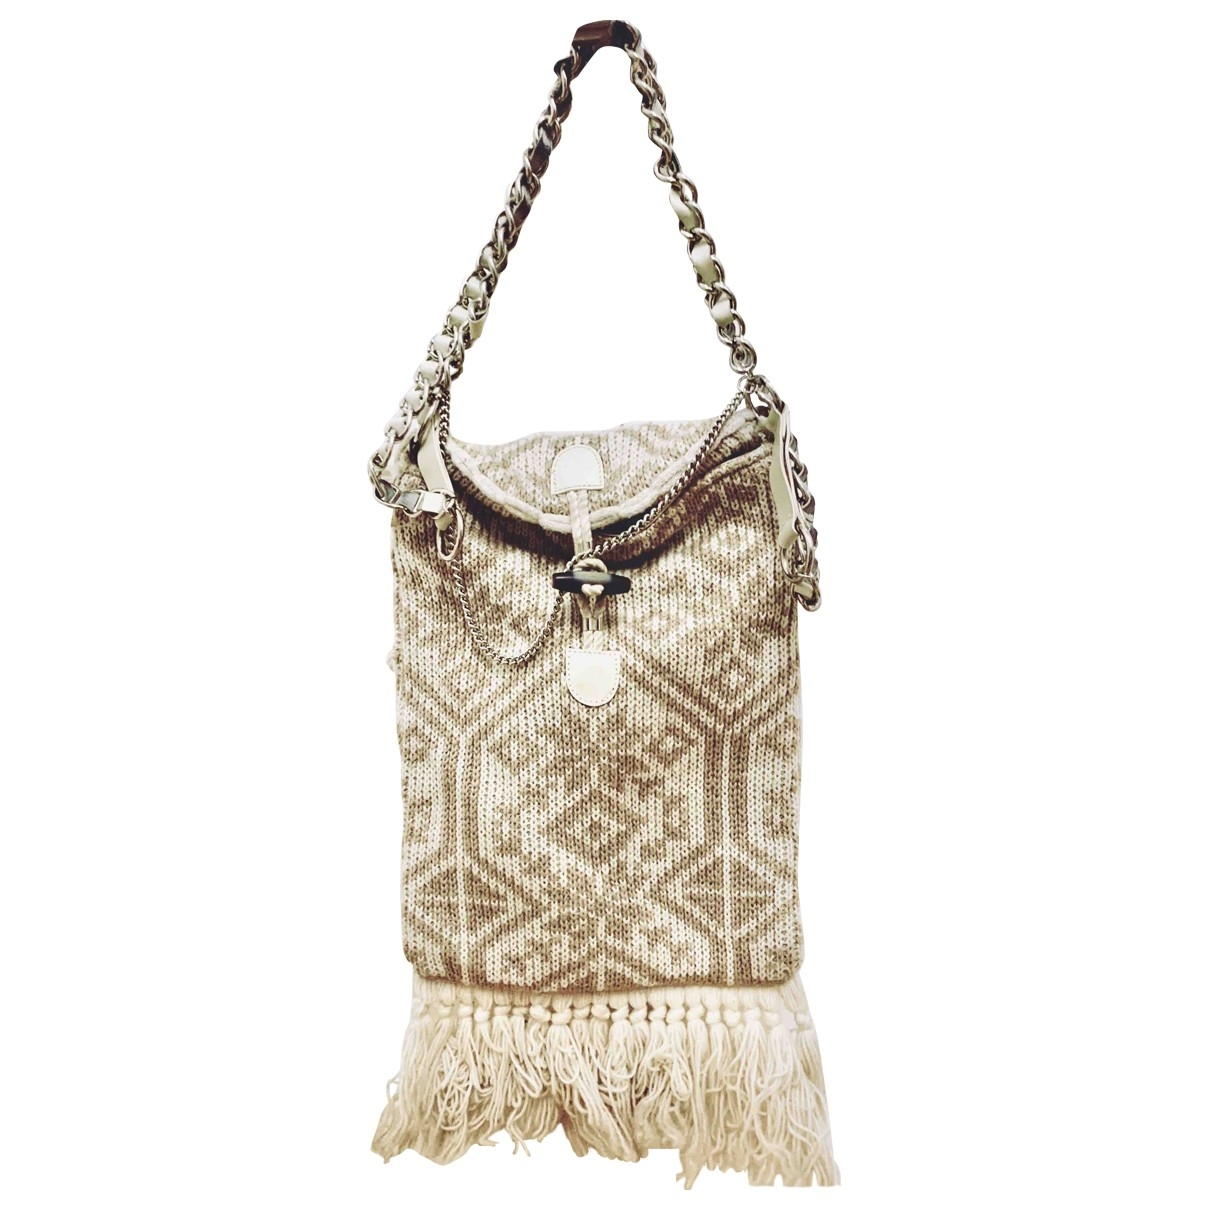 D&g \N Beige Wool handbag for Women \N